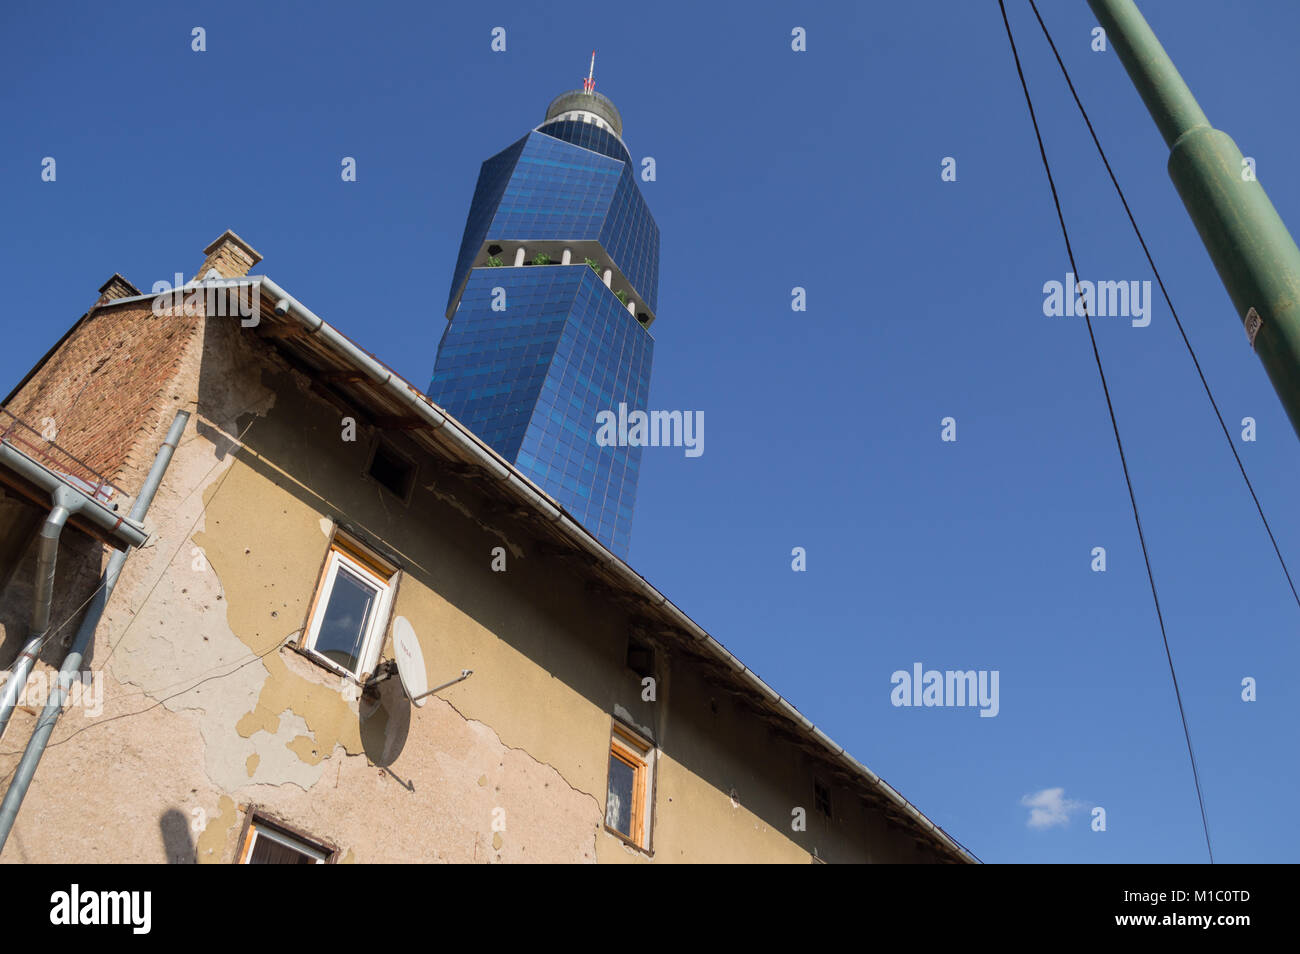 Avaz Twist Tower and Traditional Houses with Bullet Hole Remains in Sarajevo, Bosnia and Herzegovina - Stock Image